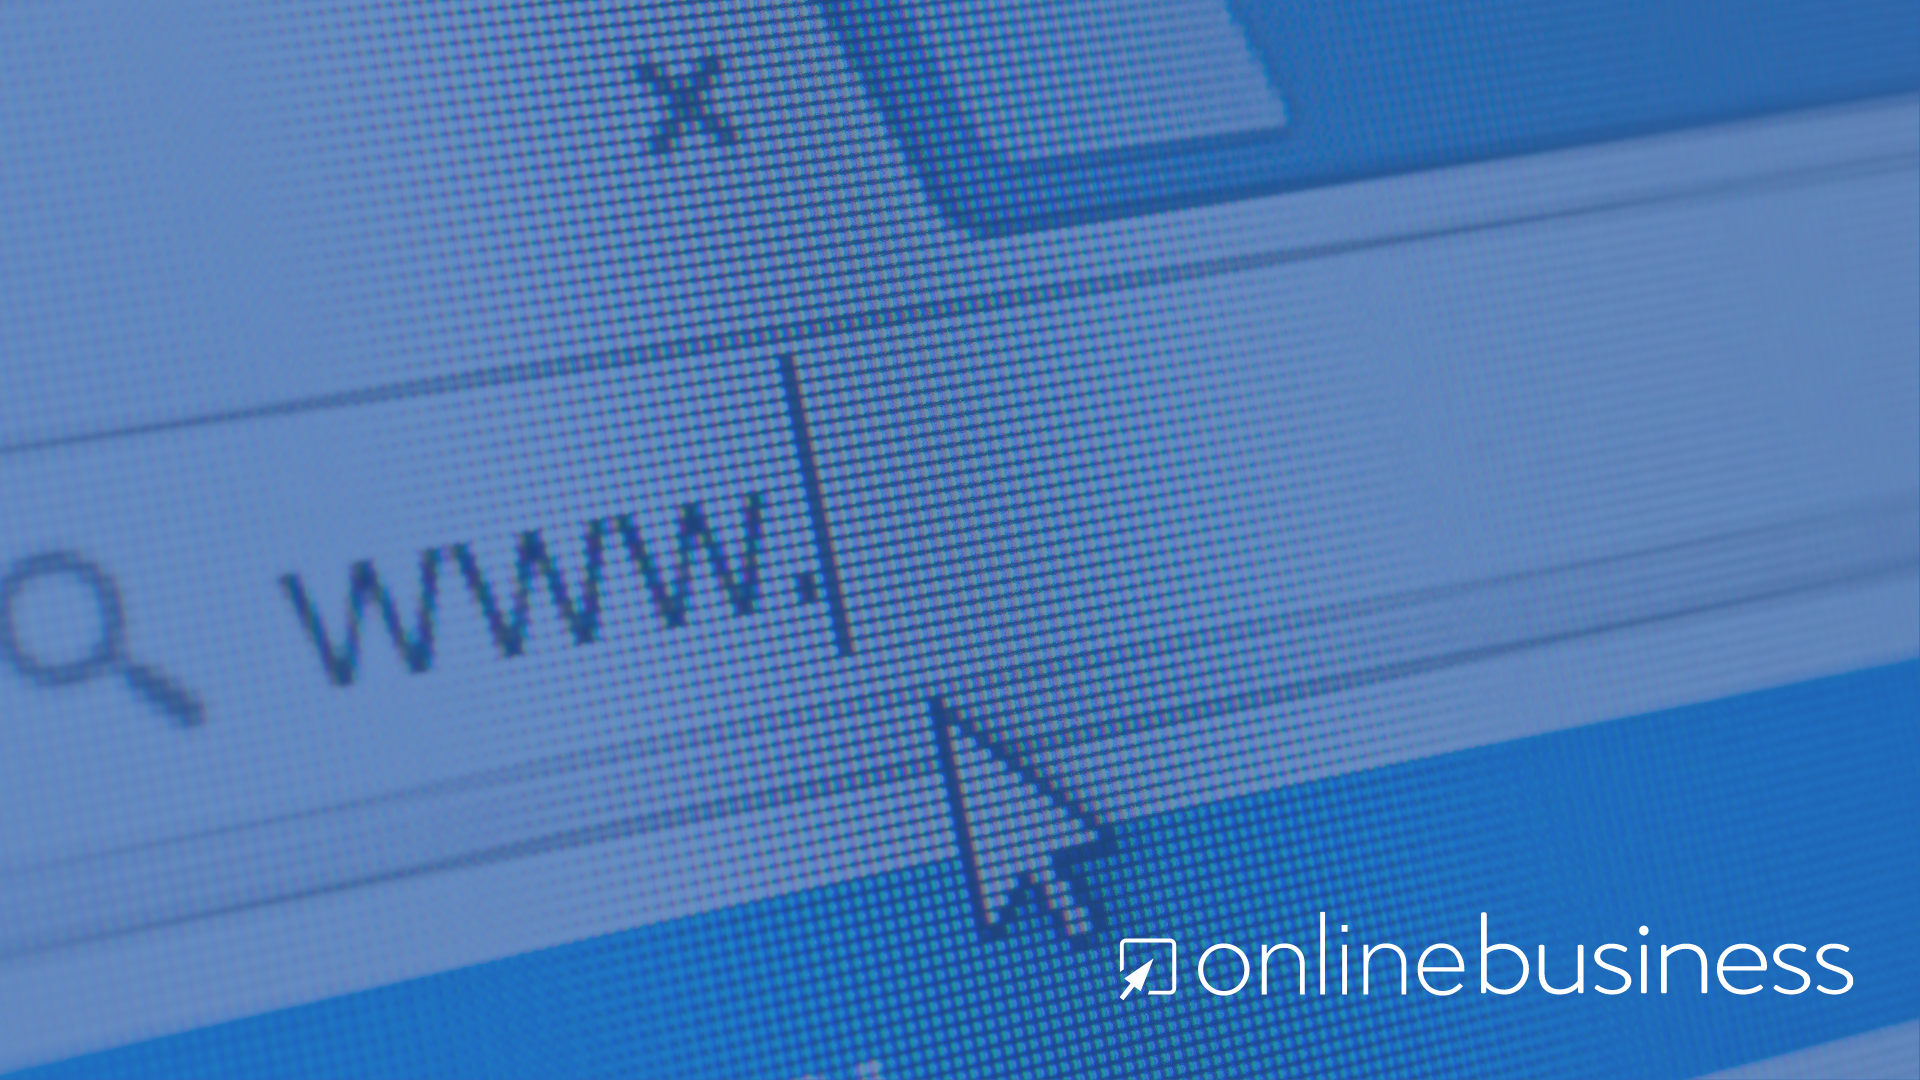 How Shorter Domain Names Help Brands Thrive Reports OnlineBusiness.com